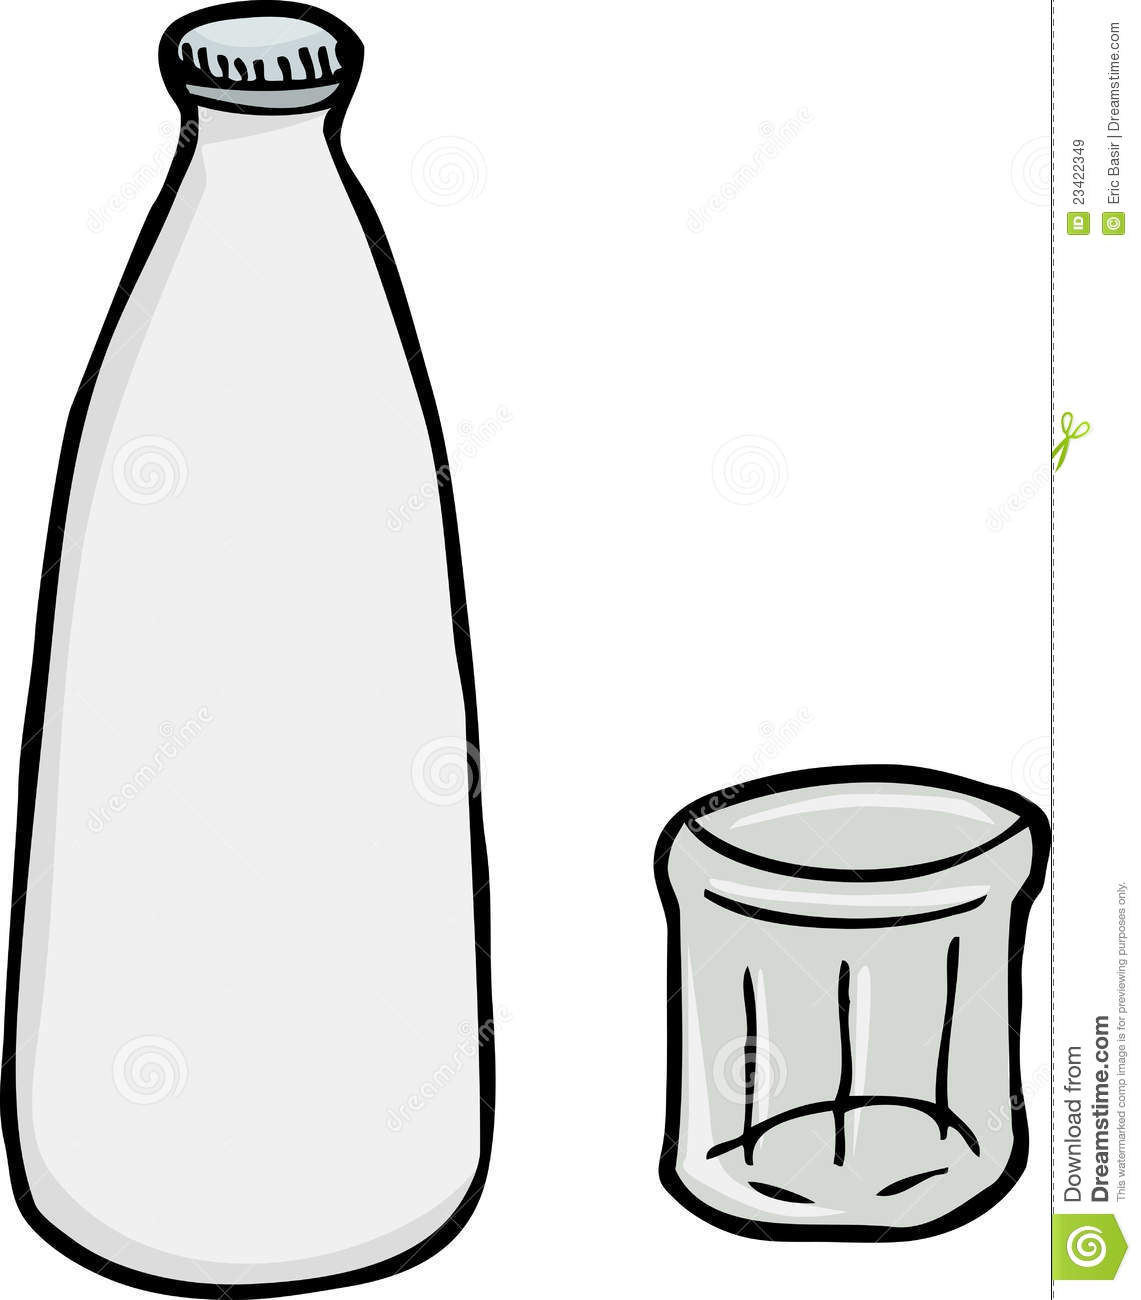 Missing Milk Carton Template Free Download Clip Art.